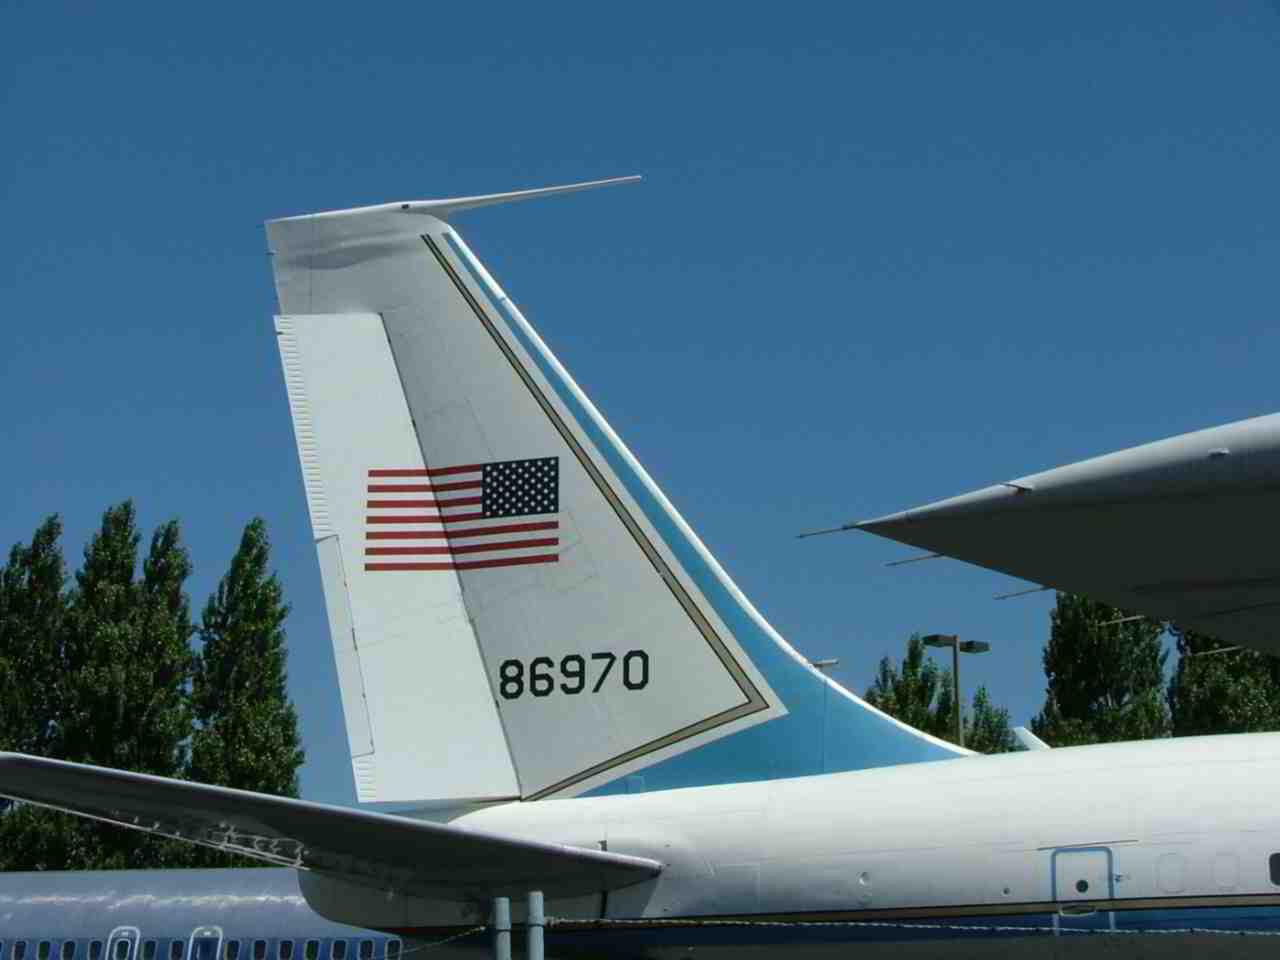 Air Force One VC-137B 58-6970